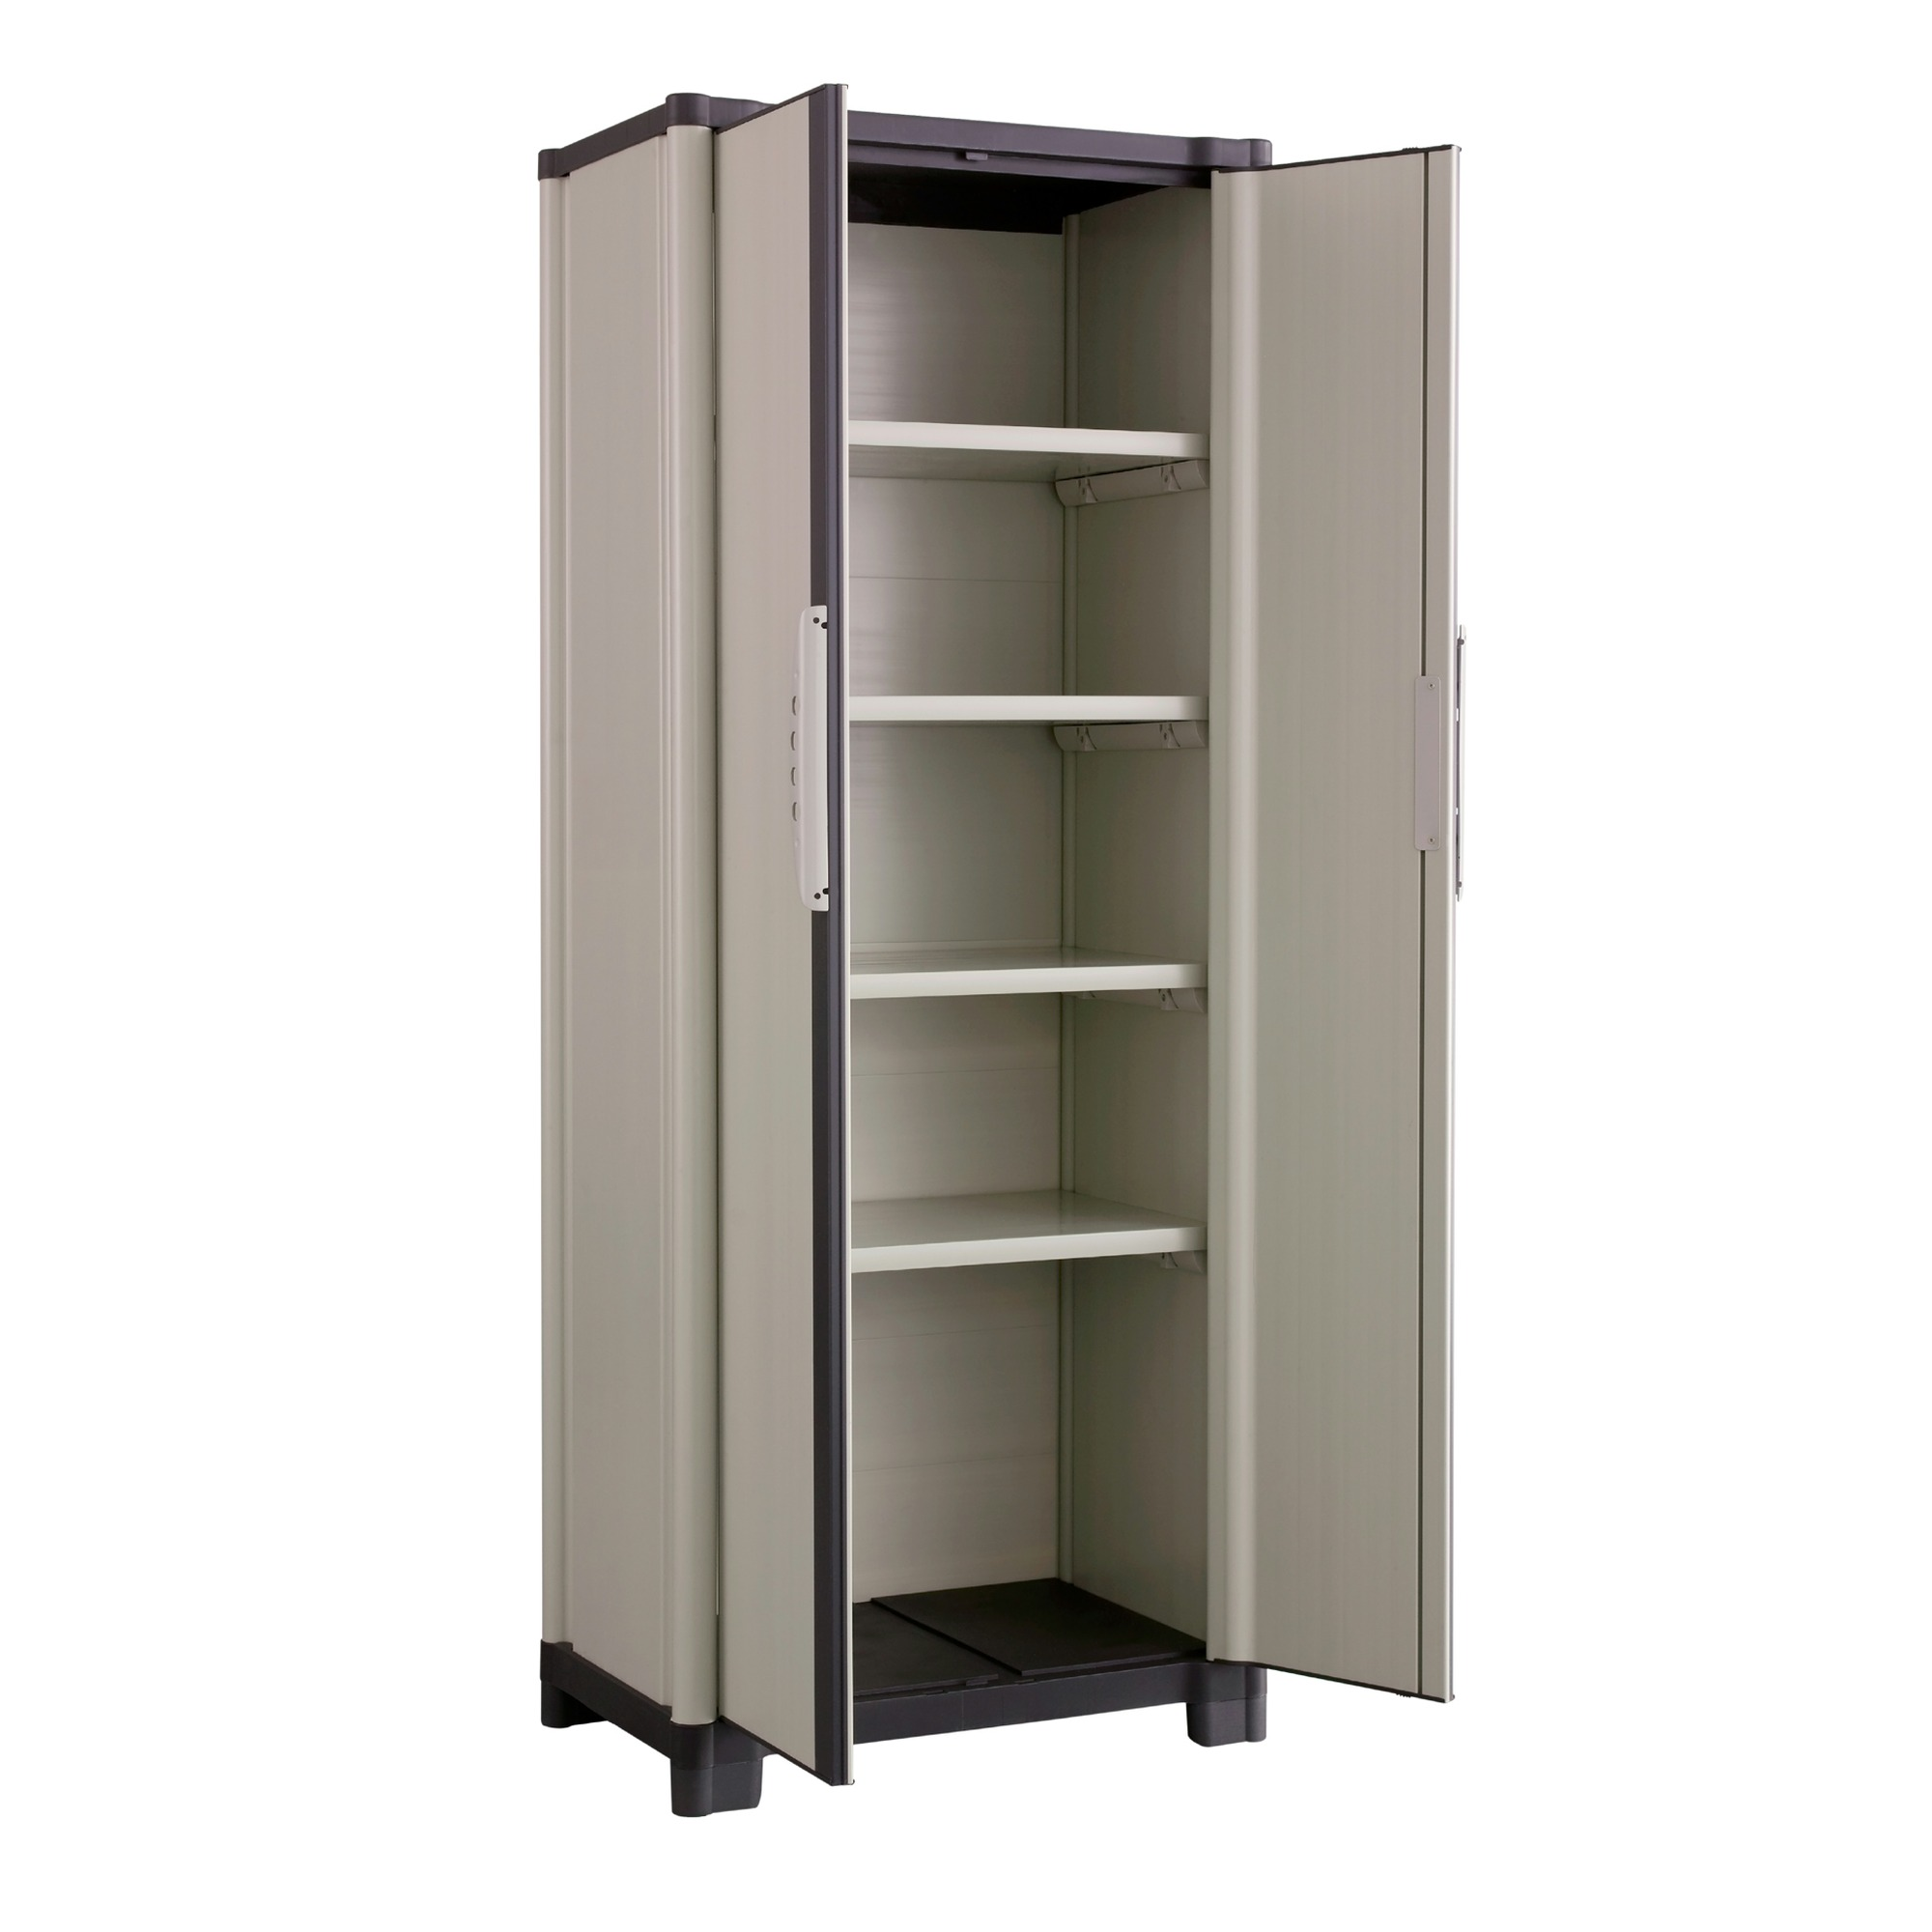 Grosfillex workline armoire gris anthracite etag res for Armoire grosfillex essential